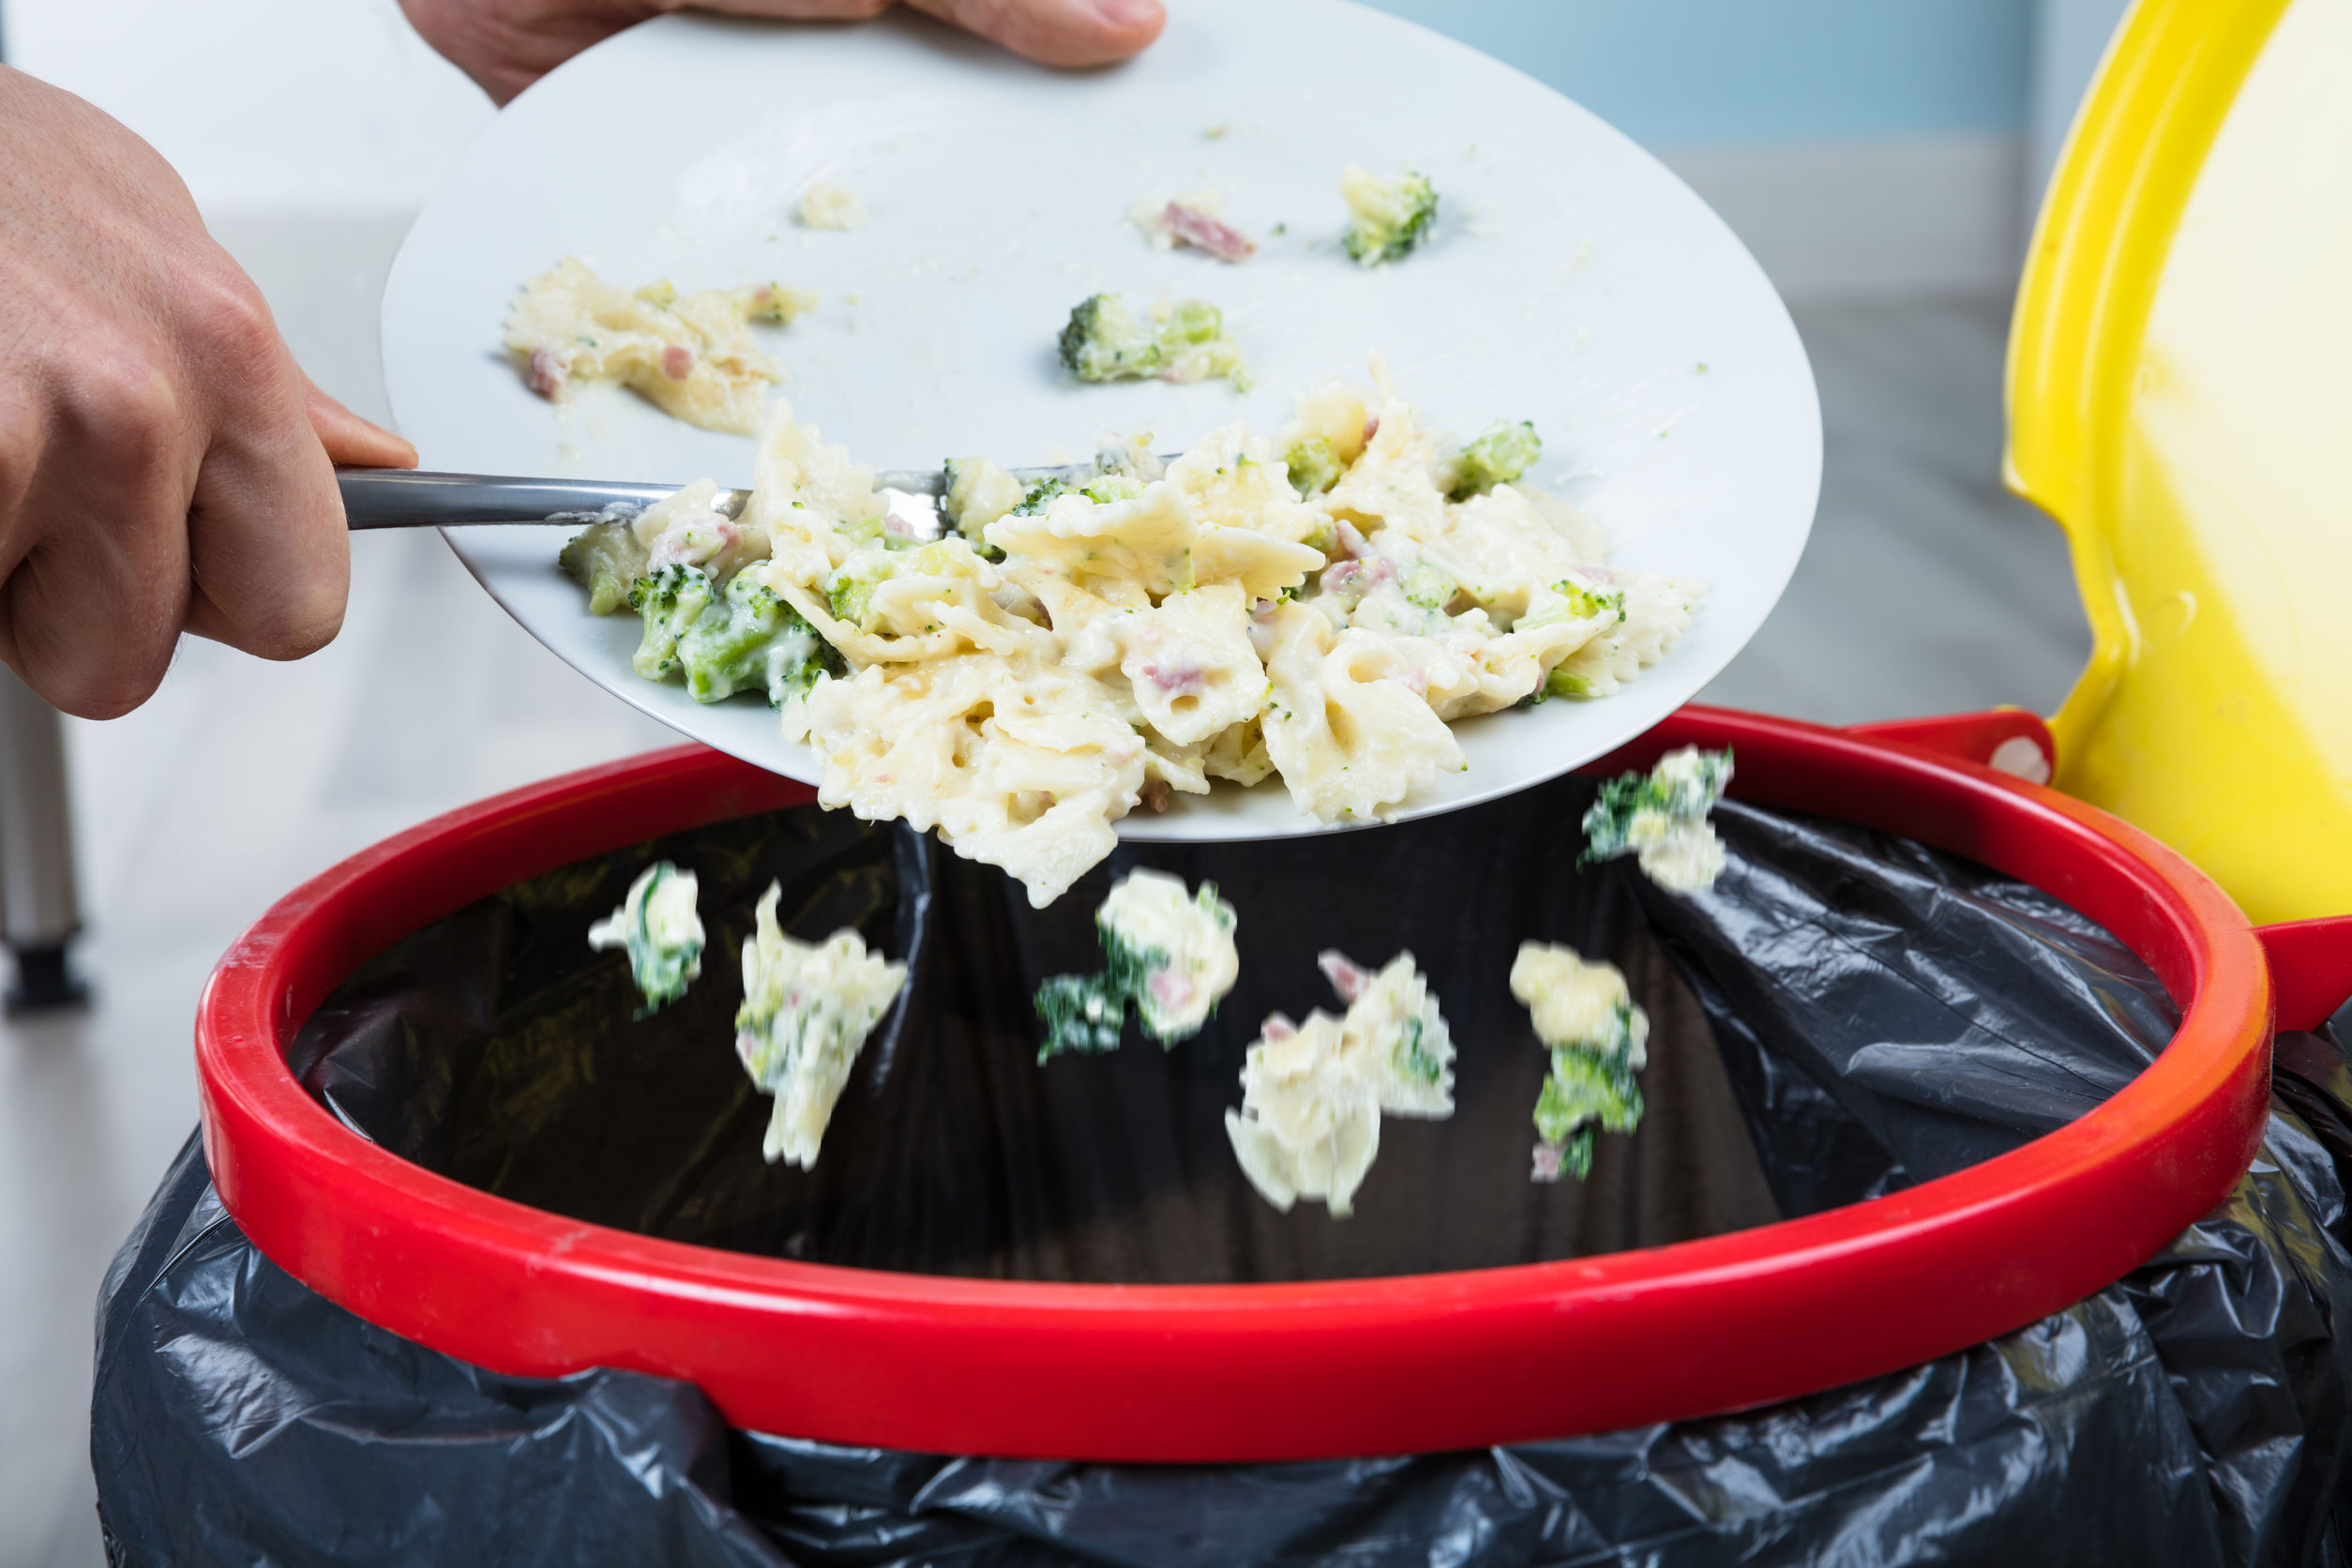 How To Reduce And Manage Food Waste In Your Restaurant